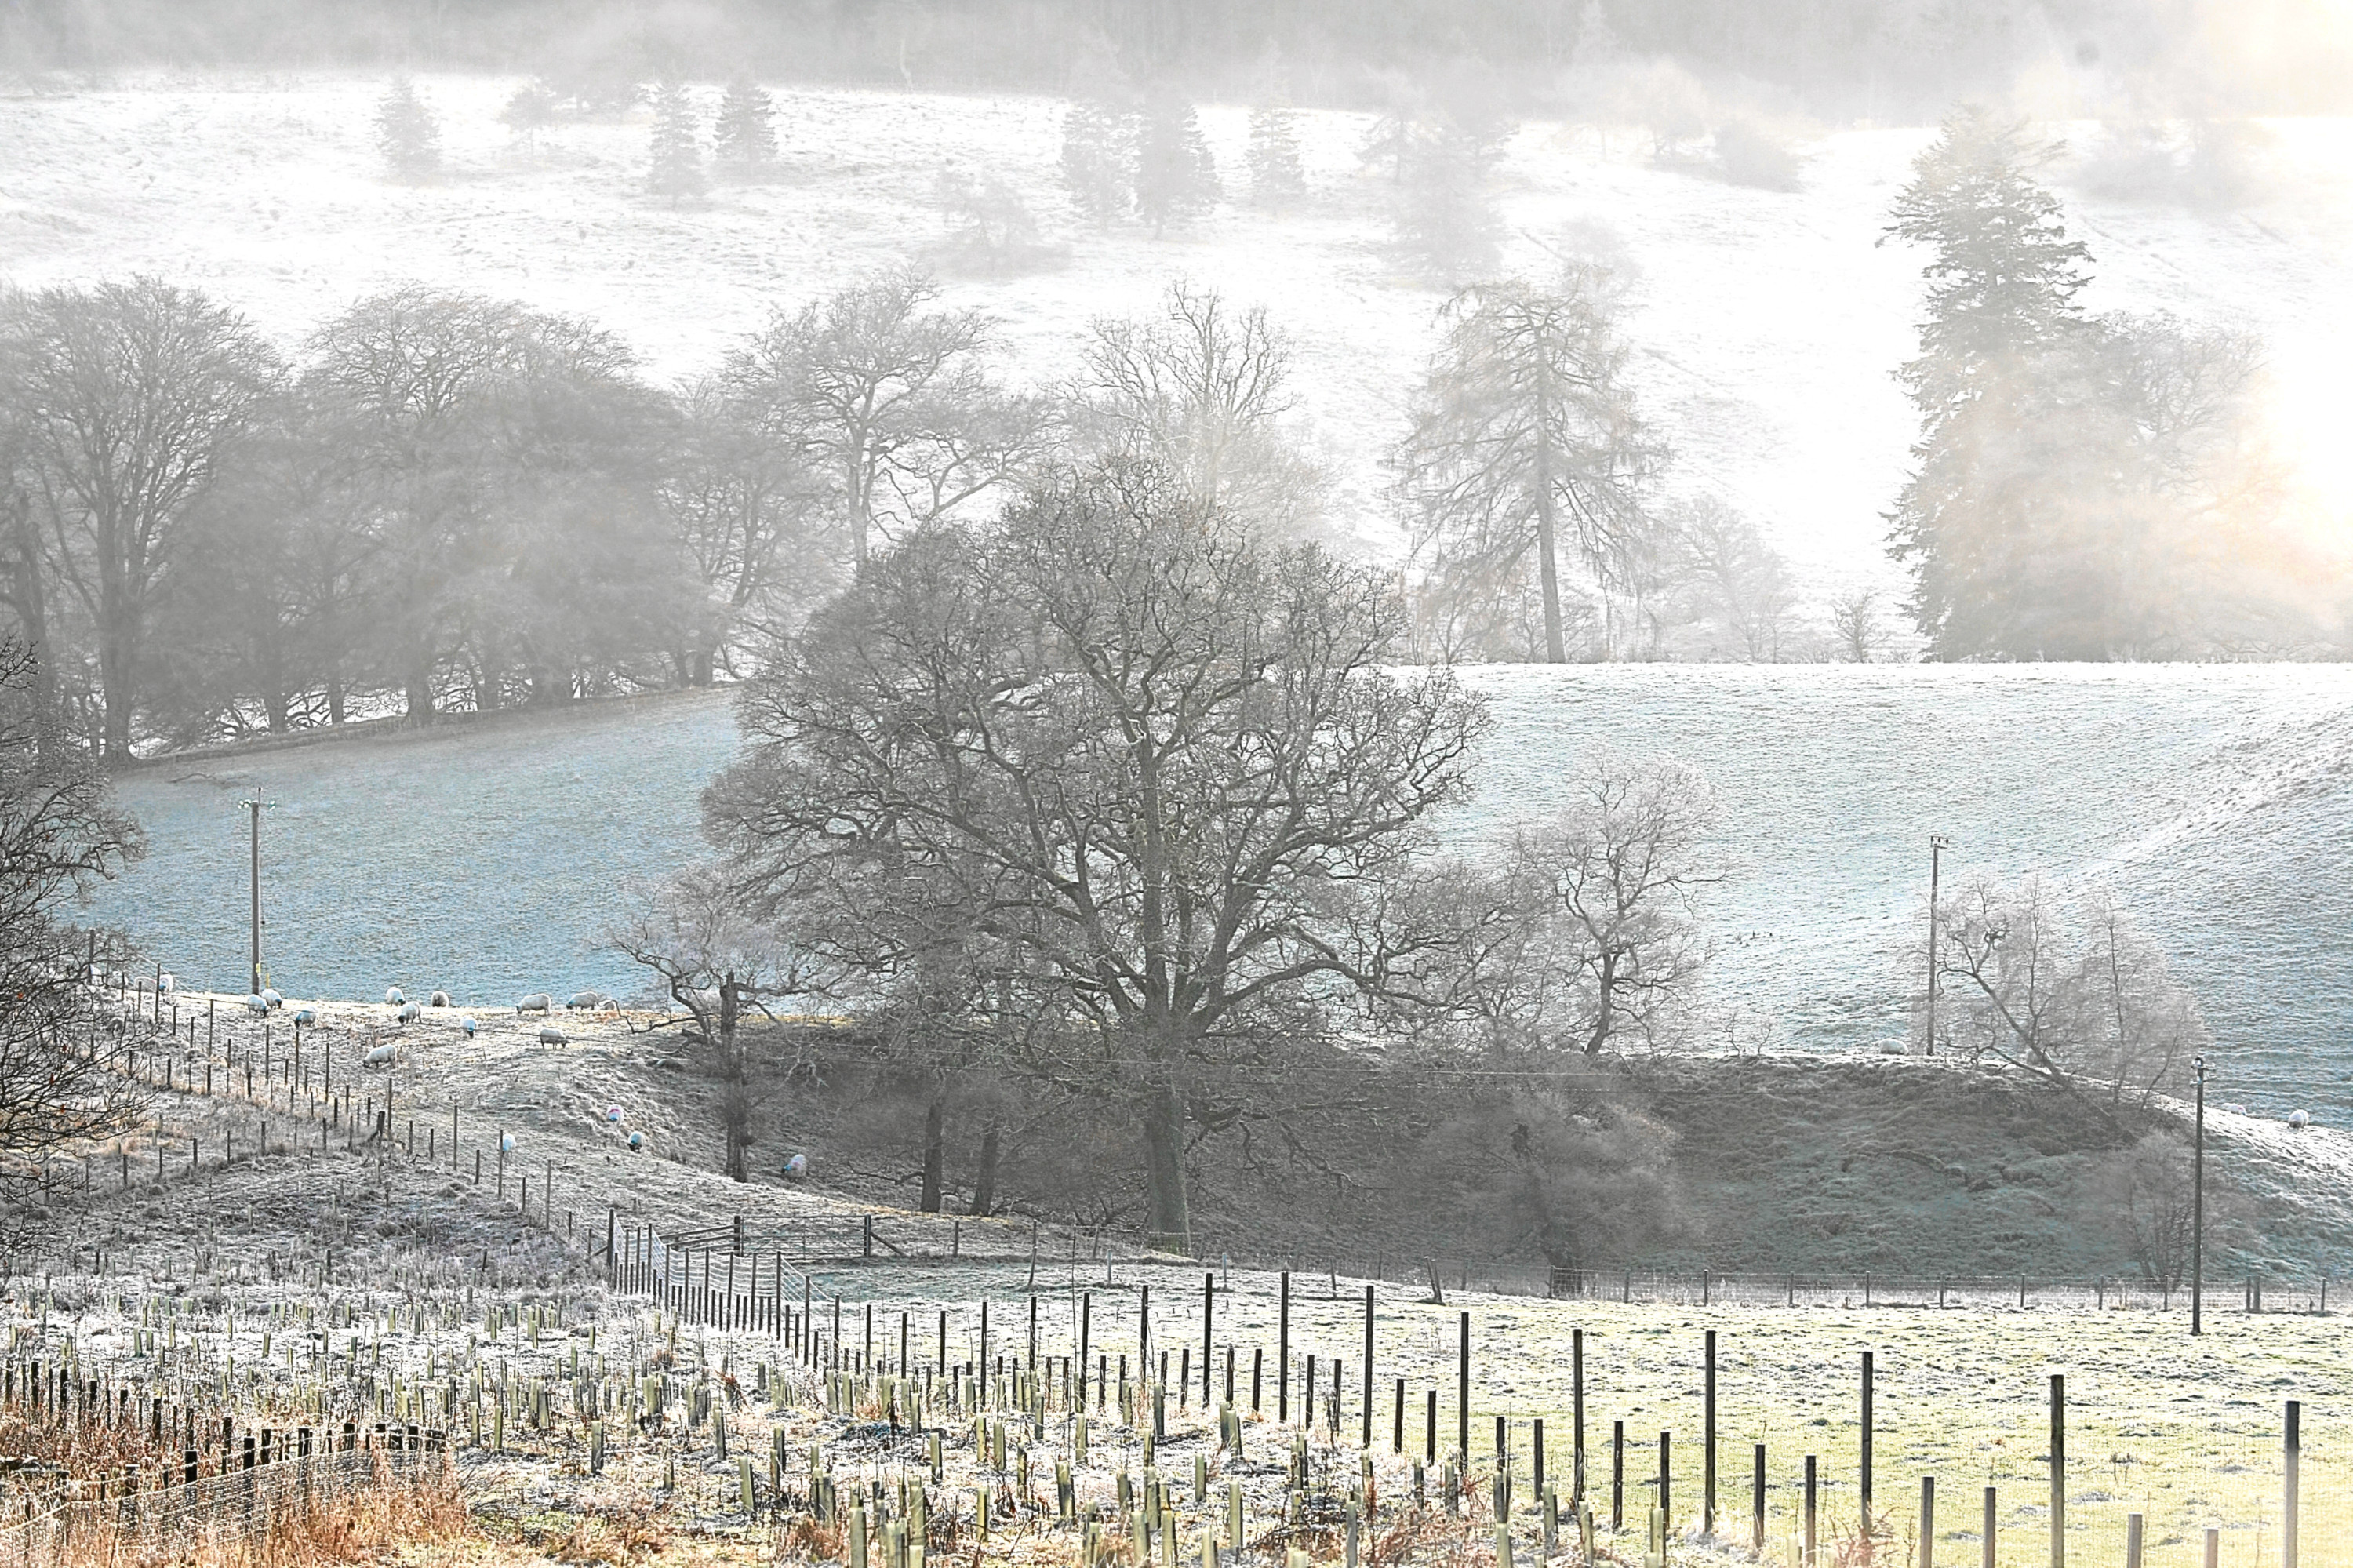 A hard ground frost and winter mist in the Perthshire countryside.